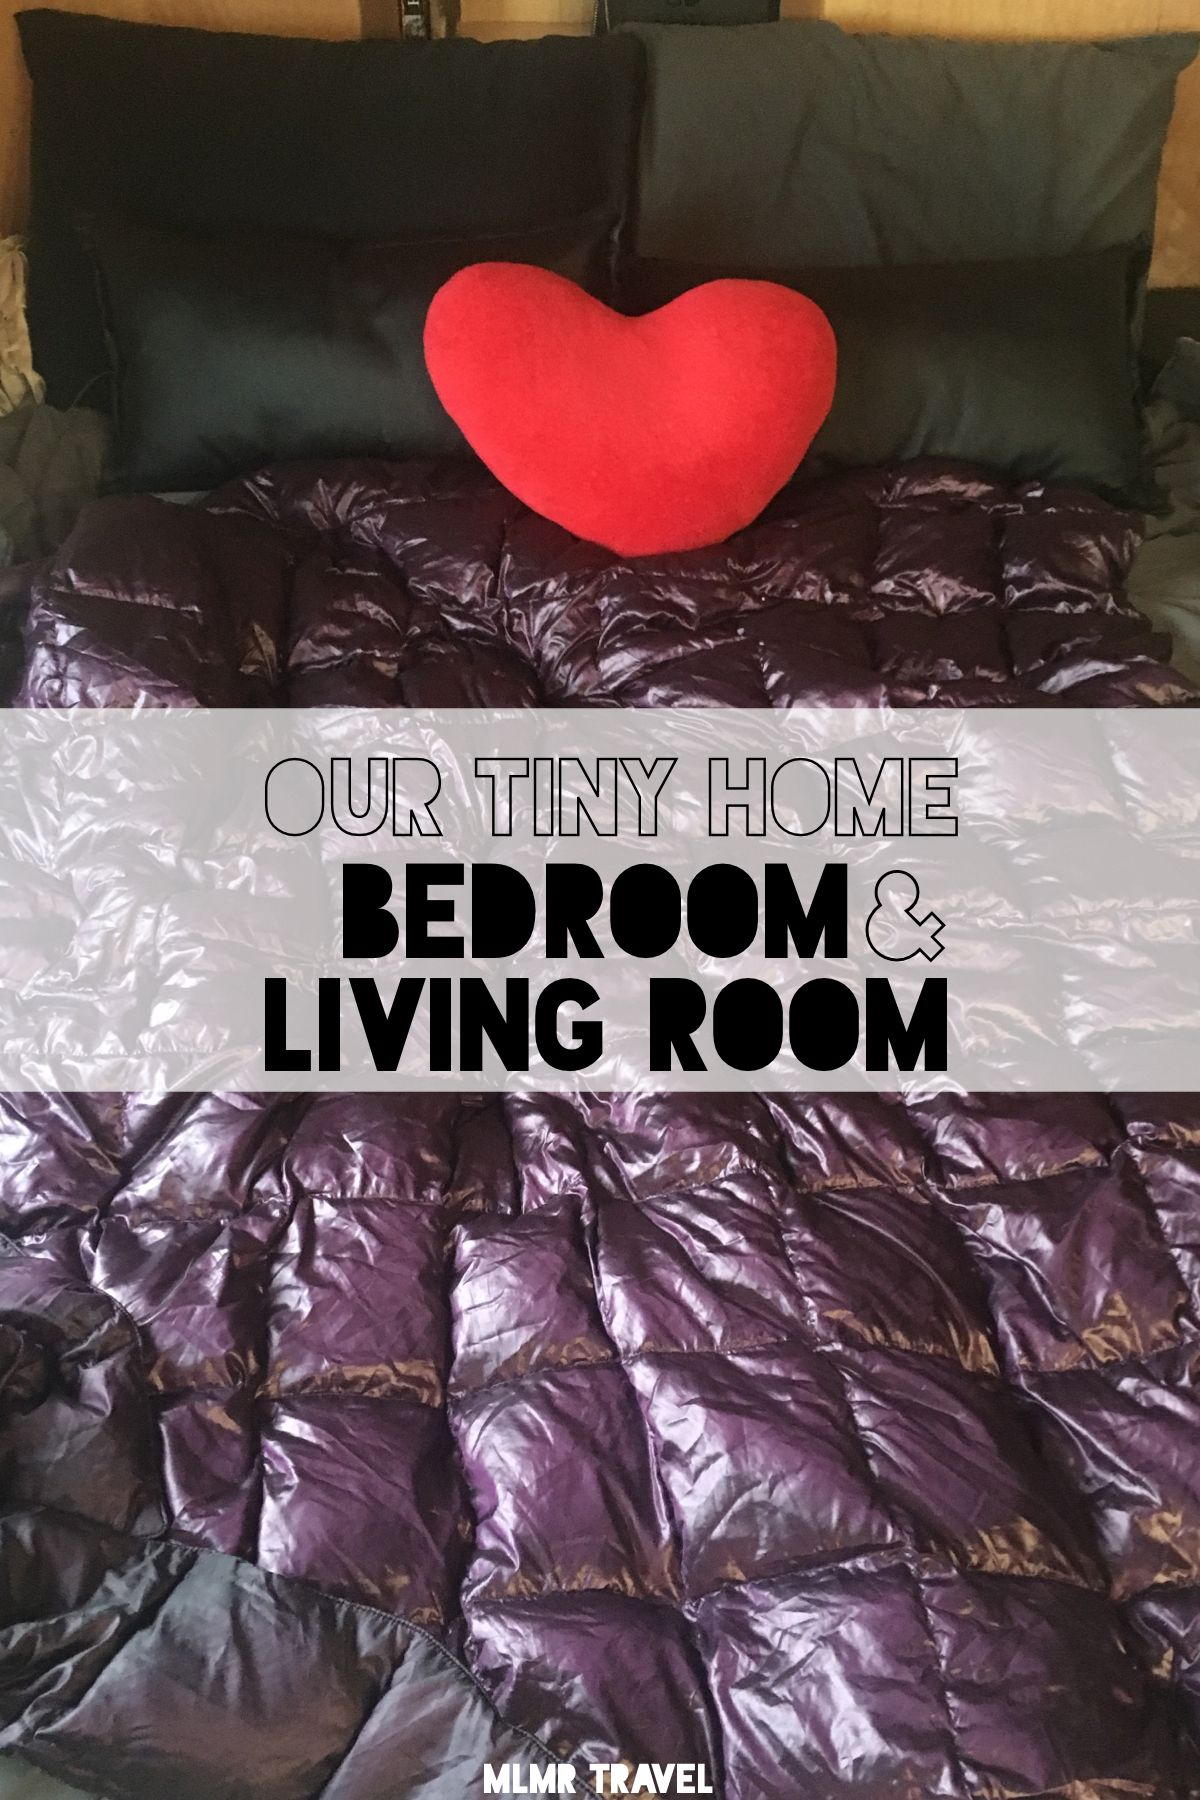 All About The Bedroom And Living Room In Our Tiny Home Since They Are One And